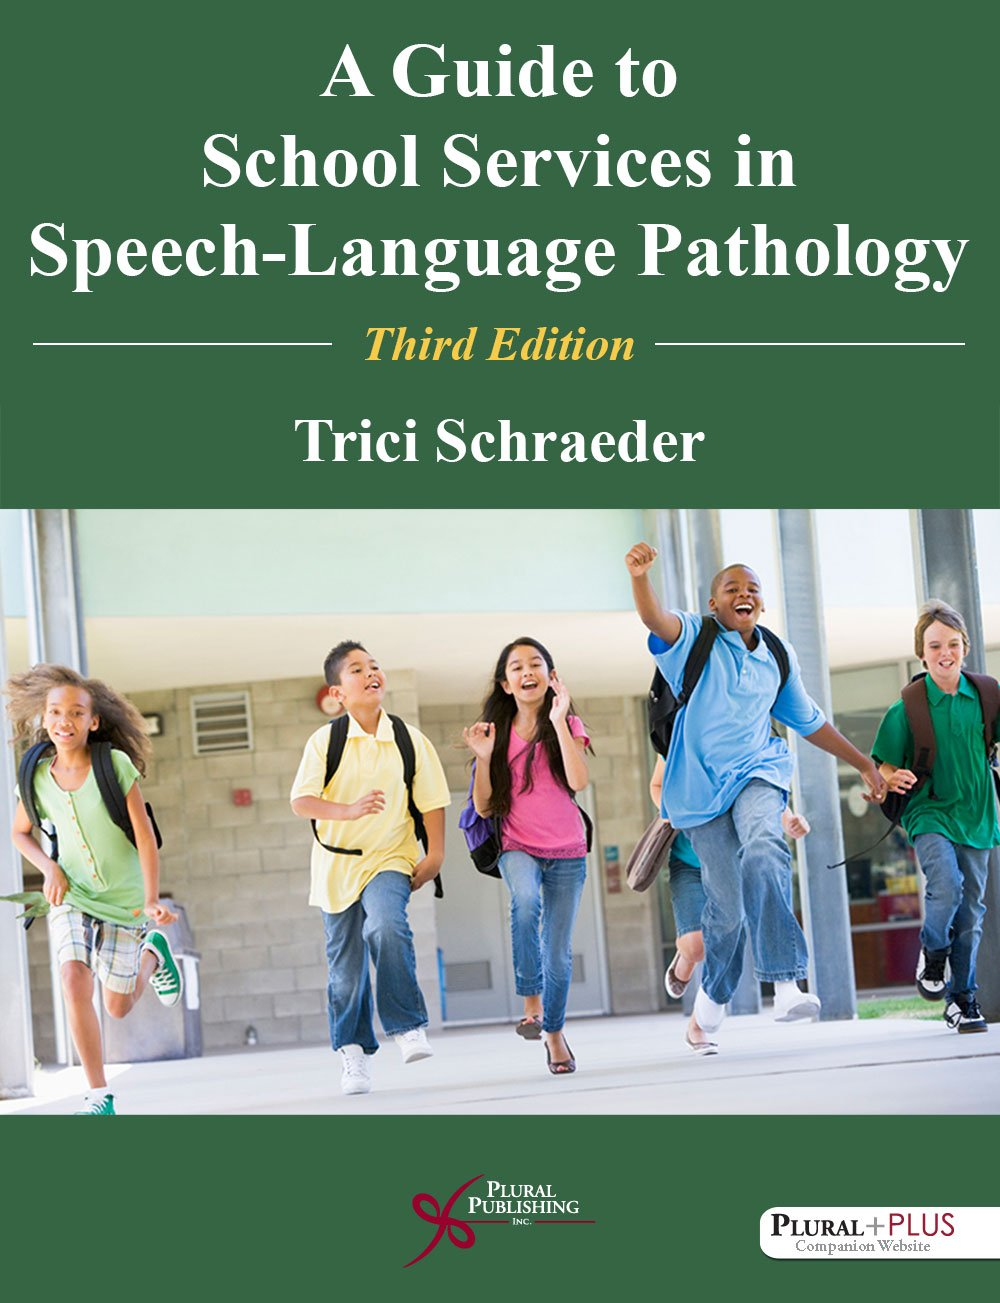 A Guide to School Services in Speech-Language Pathology, Third Edition by Plural Publishing, Inc.